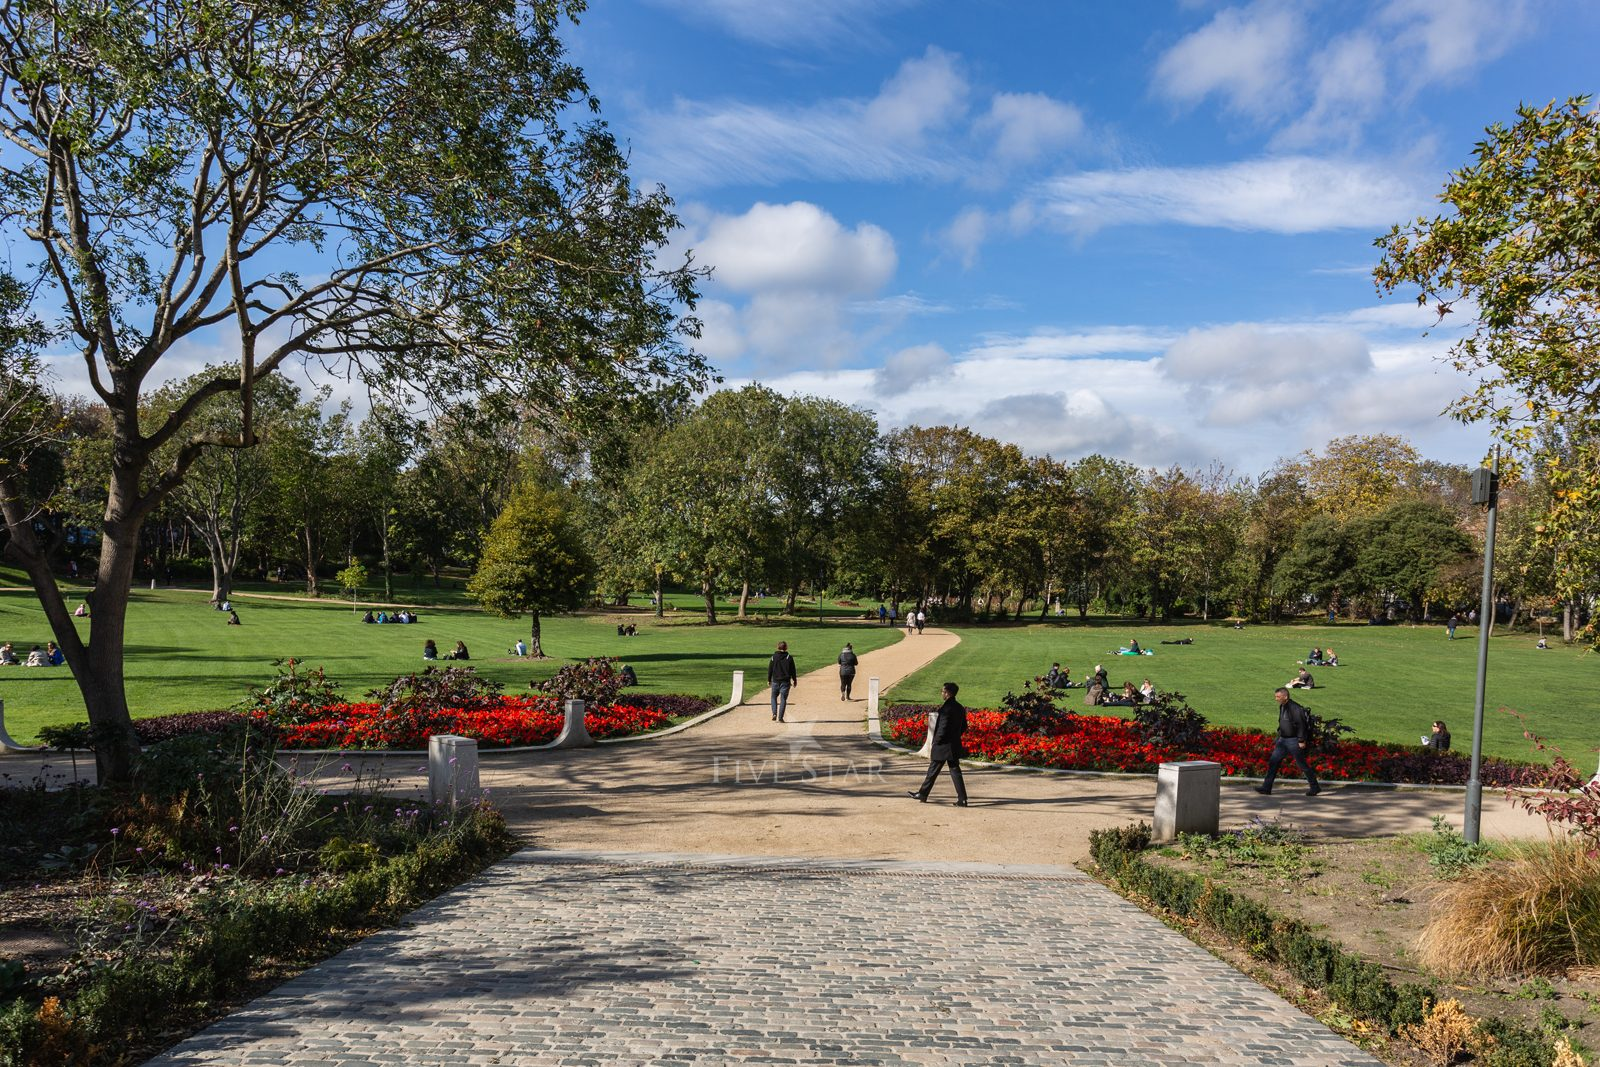 Exclusivley Yours - Five Star Merrion Square